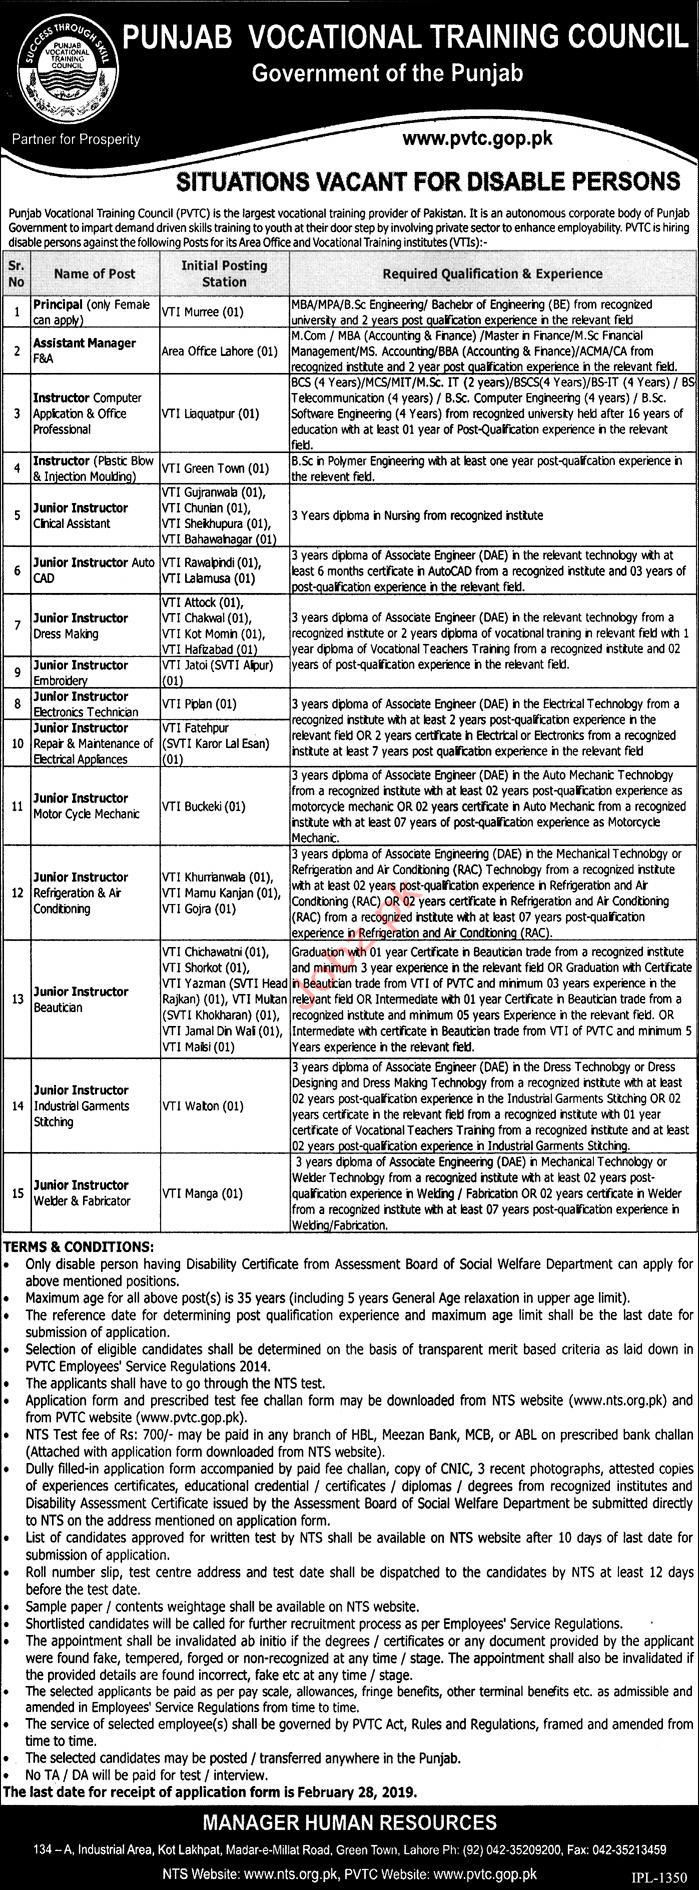 Management Jobs in Punjab Vocational Training Council